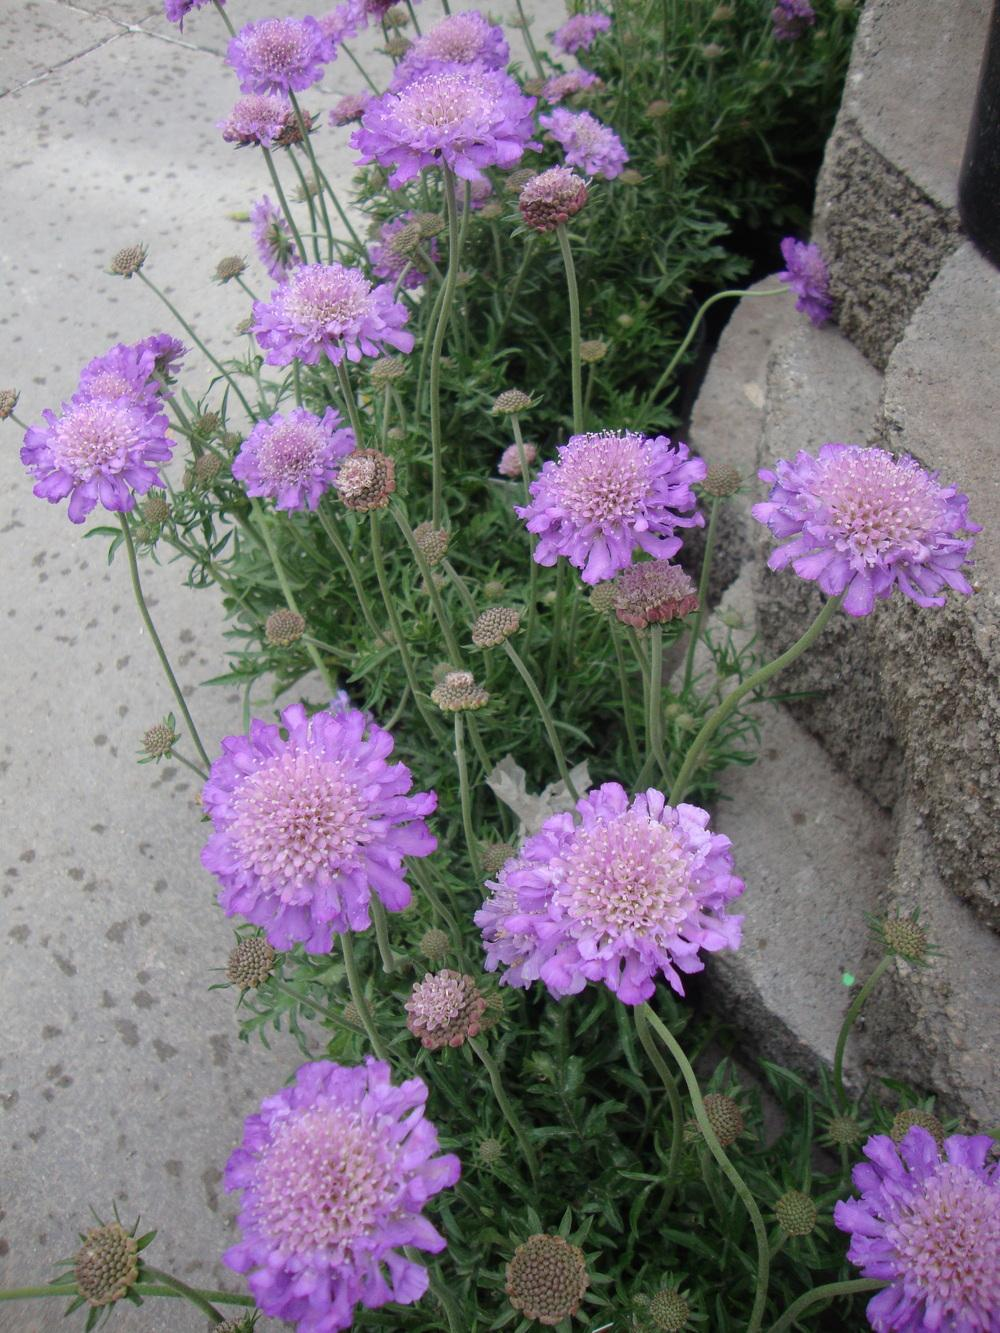 Photo Of The Entire Plant Of Pincushion Flower Scabiosa Columbaria